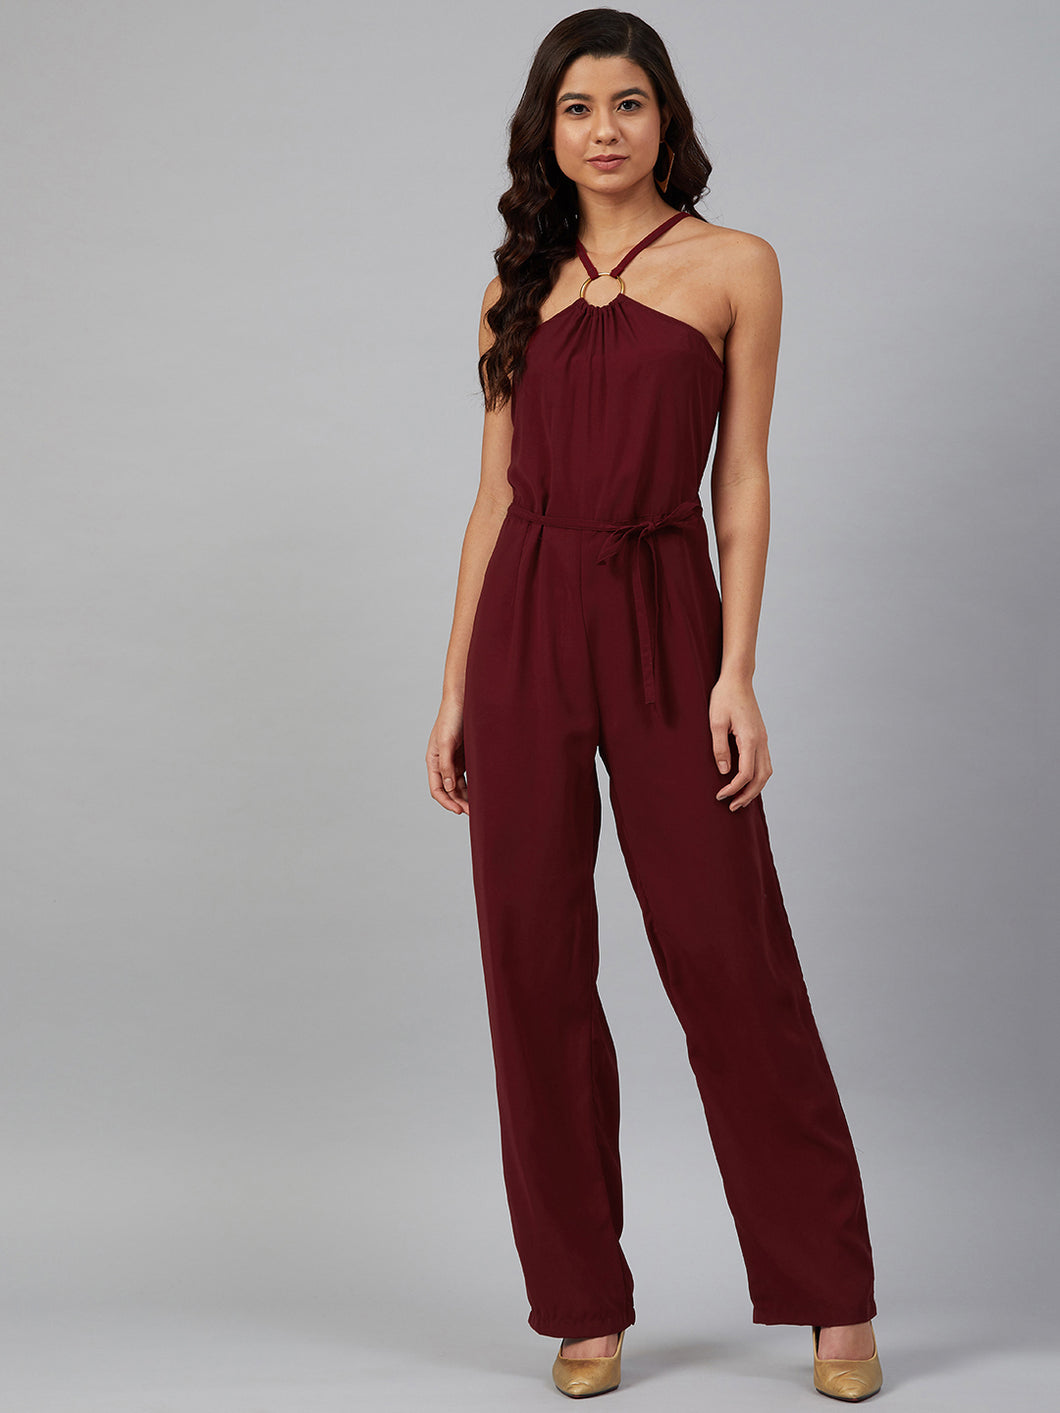 Jompers Women Maroon Solid Basic Halter Neck Basic Jumpsuit